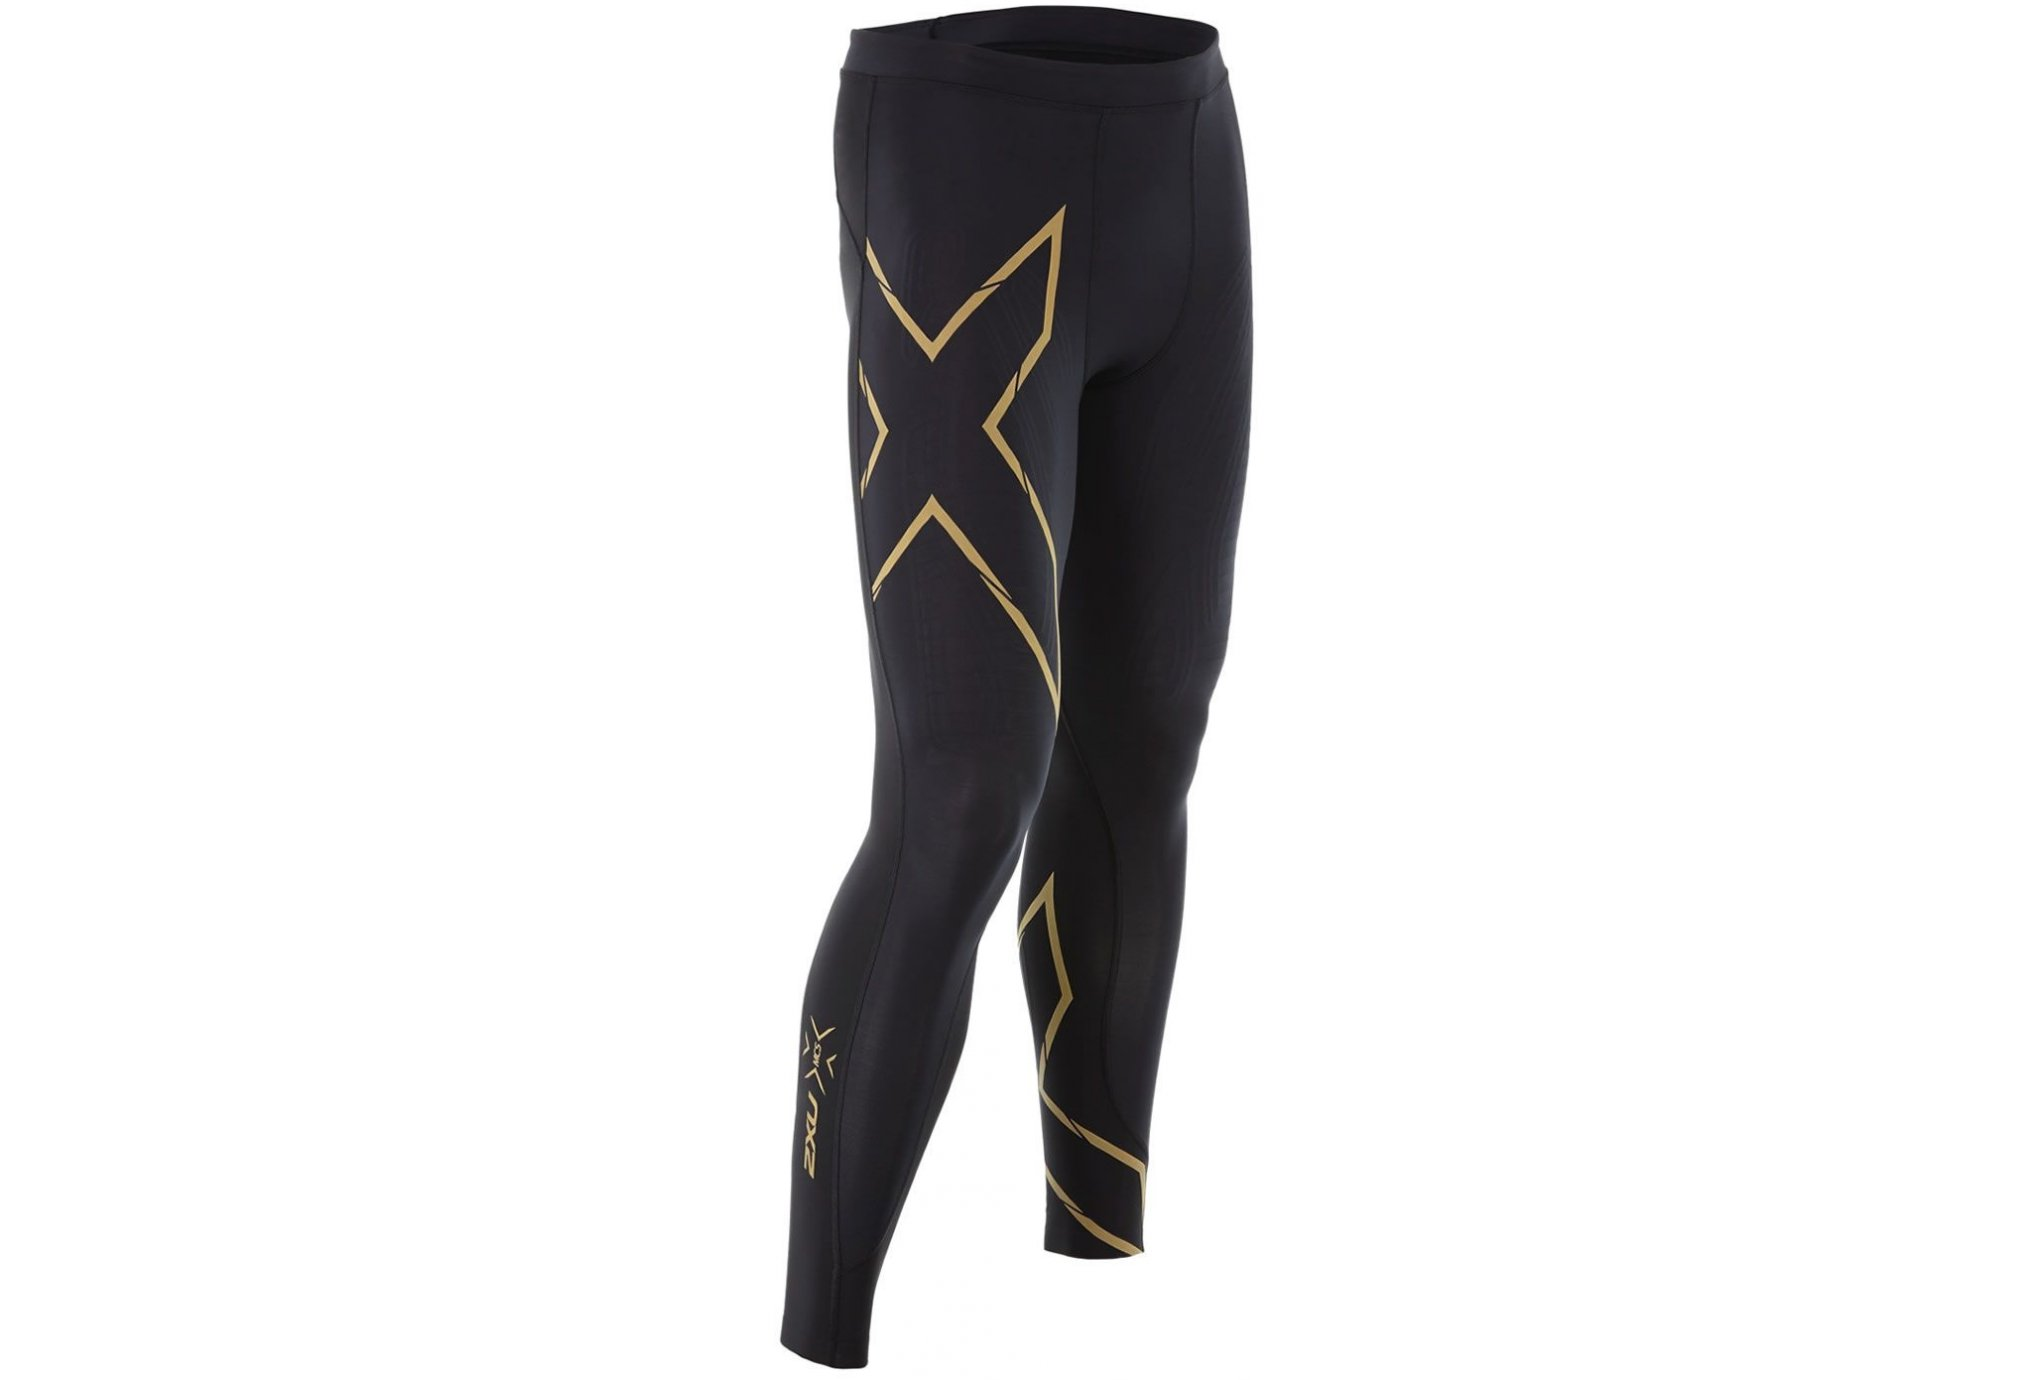 2xu Collant elite mcs v2 m vêtement running homme